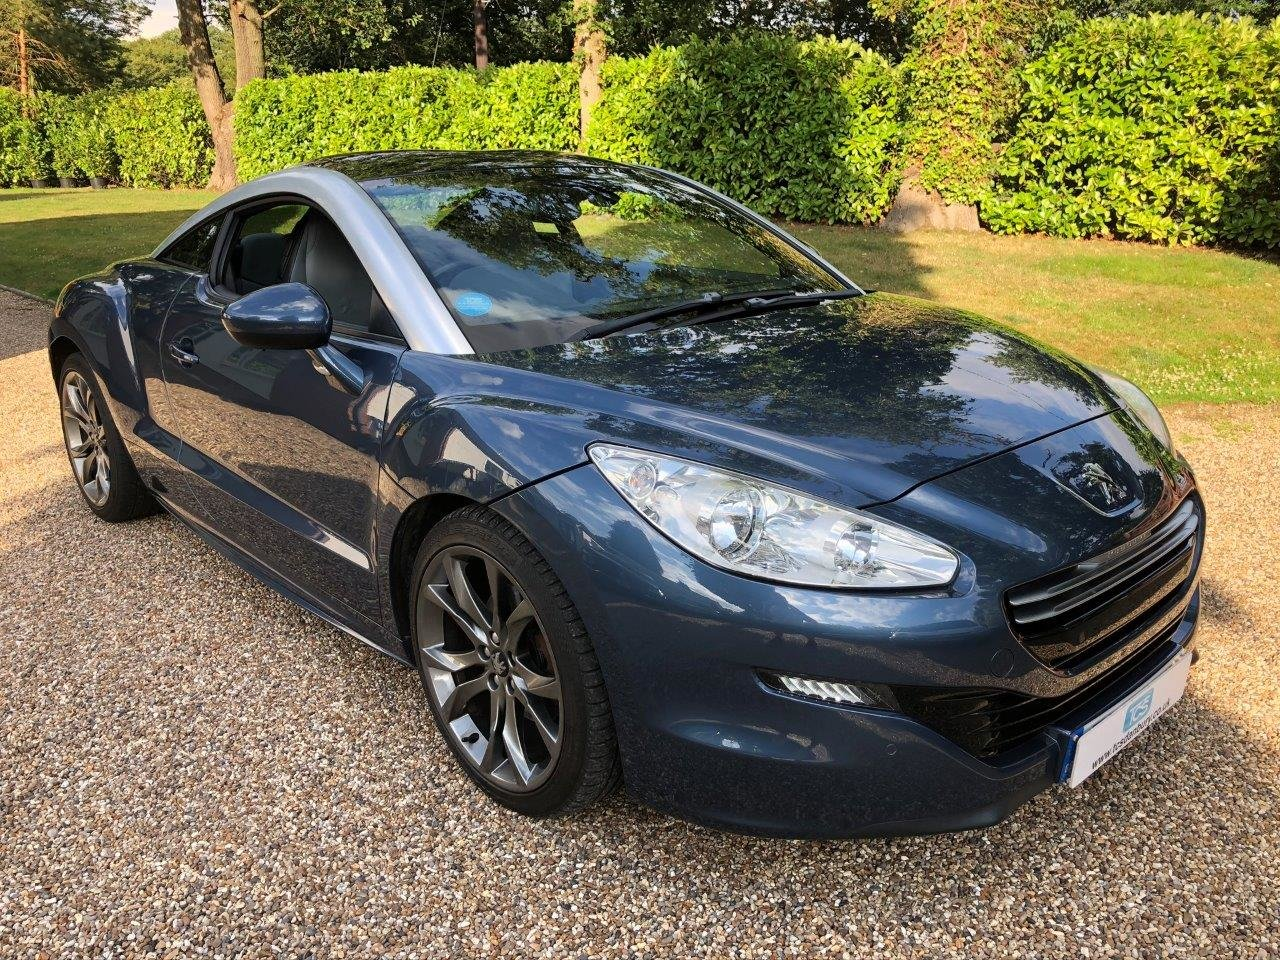 2013 Peugeot RCZ GT 156 1.6 Turbo 6-Speed Manual SOLD (picture 1 of 6)